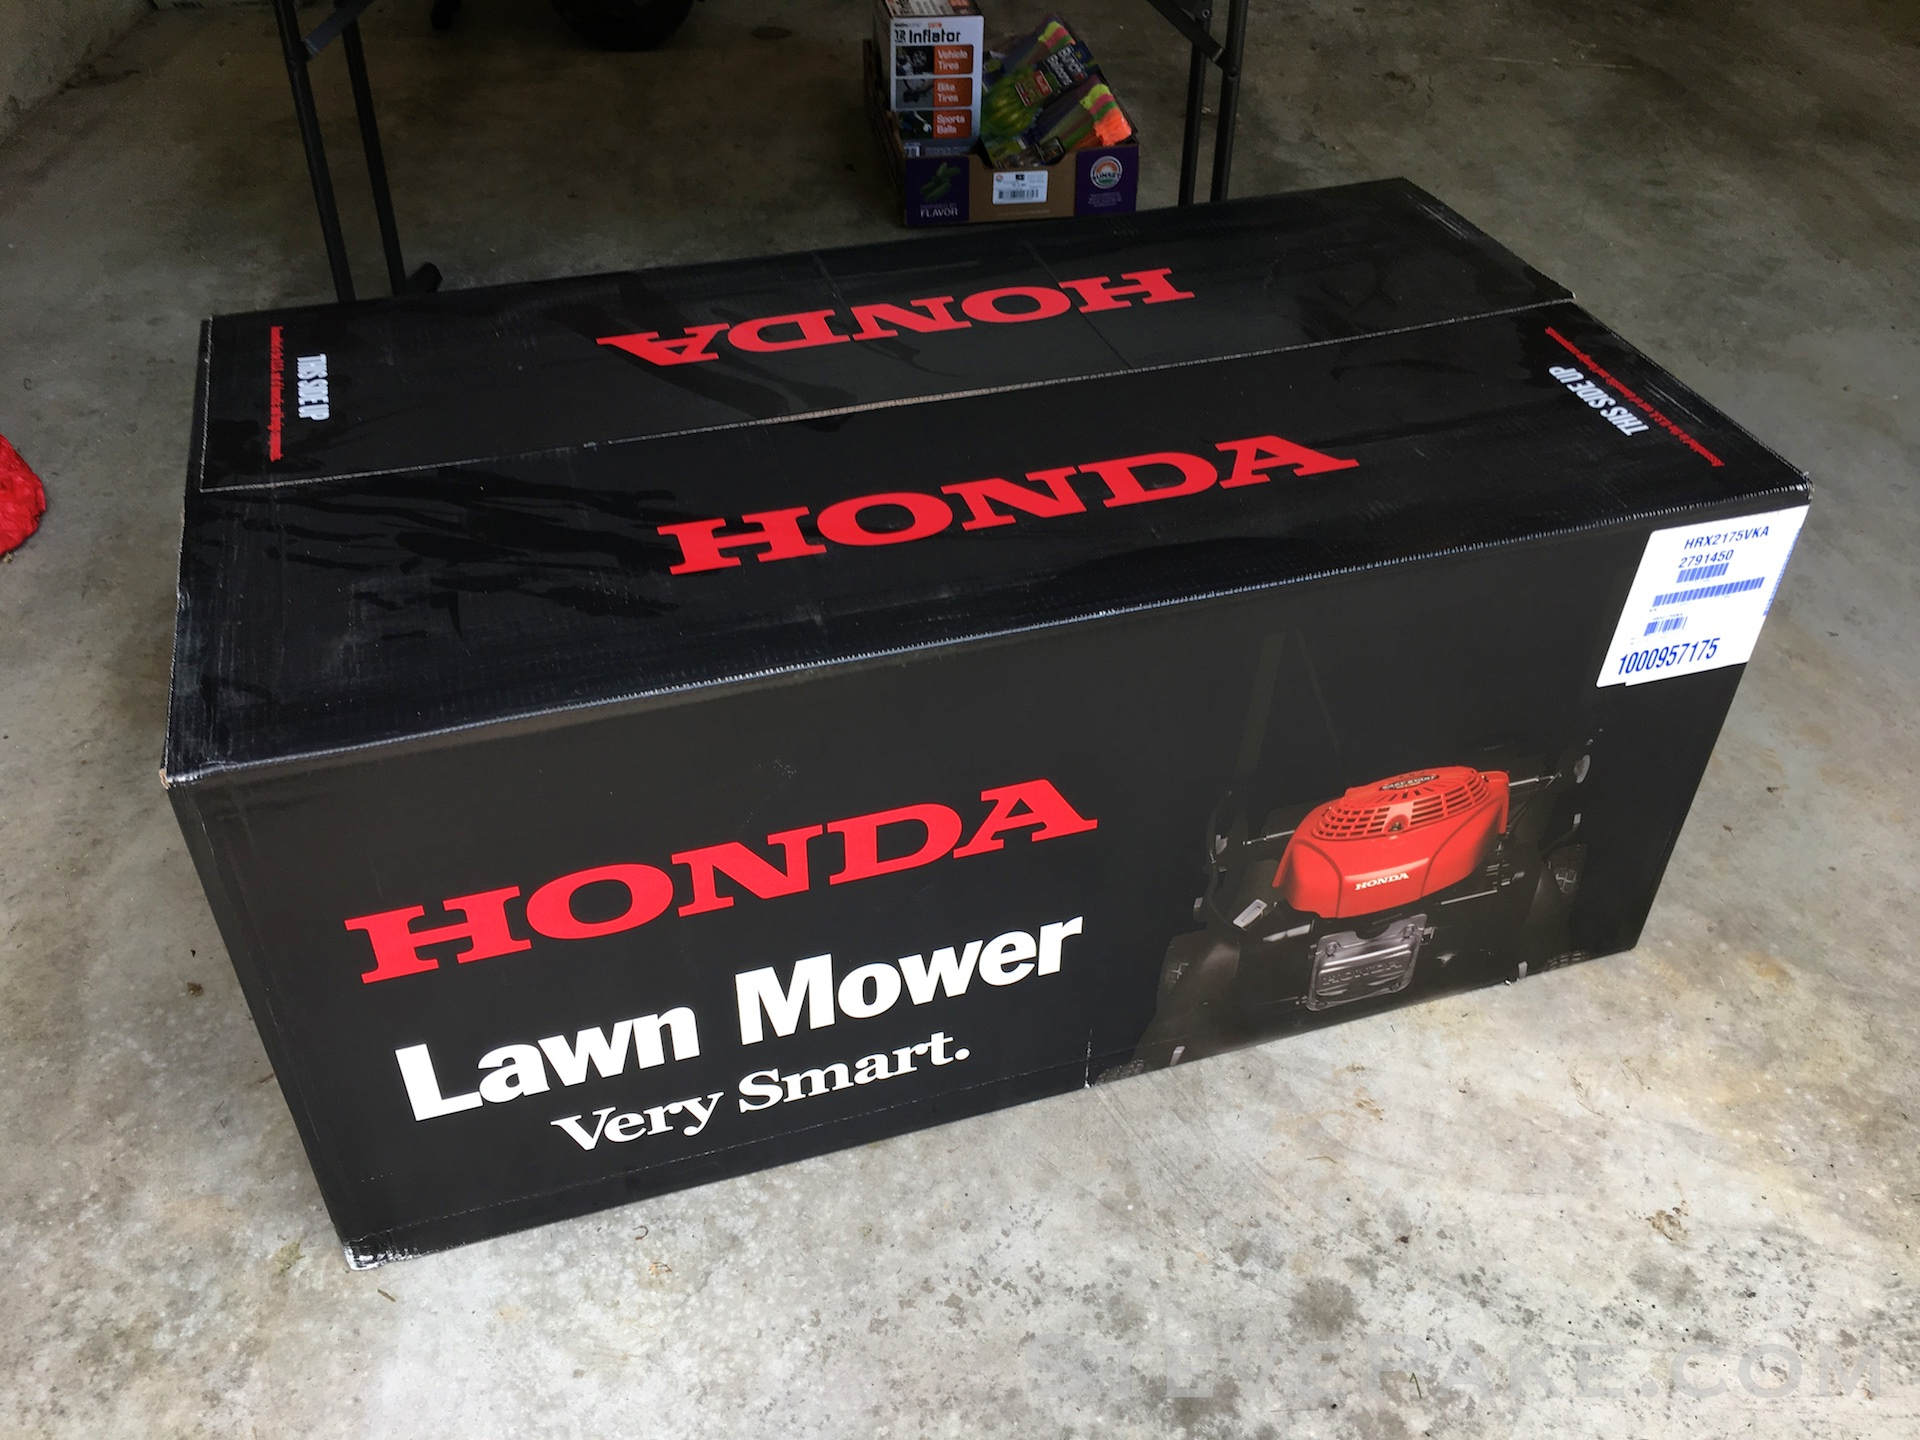 Honda Lawn Mower. Yup, very smart not lying out their asses about their specs or performance like so many other manufacturers!